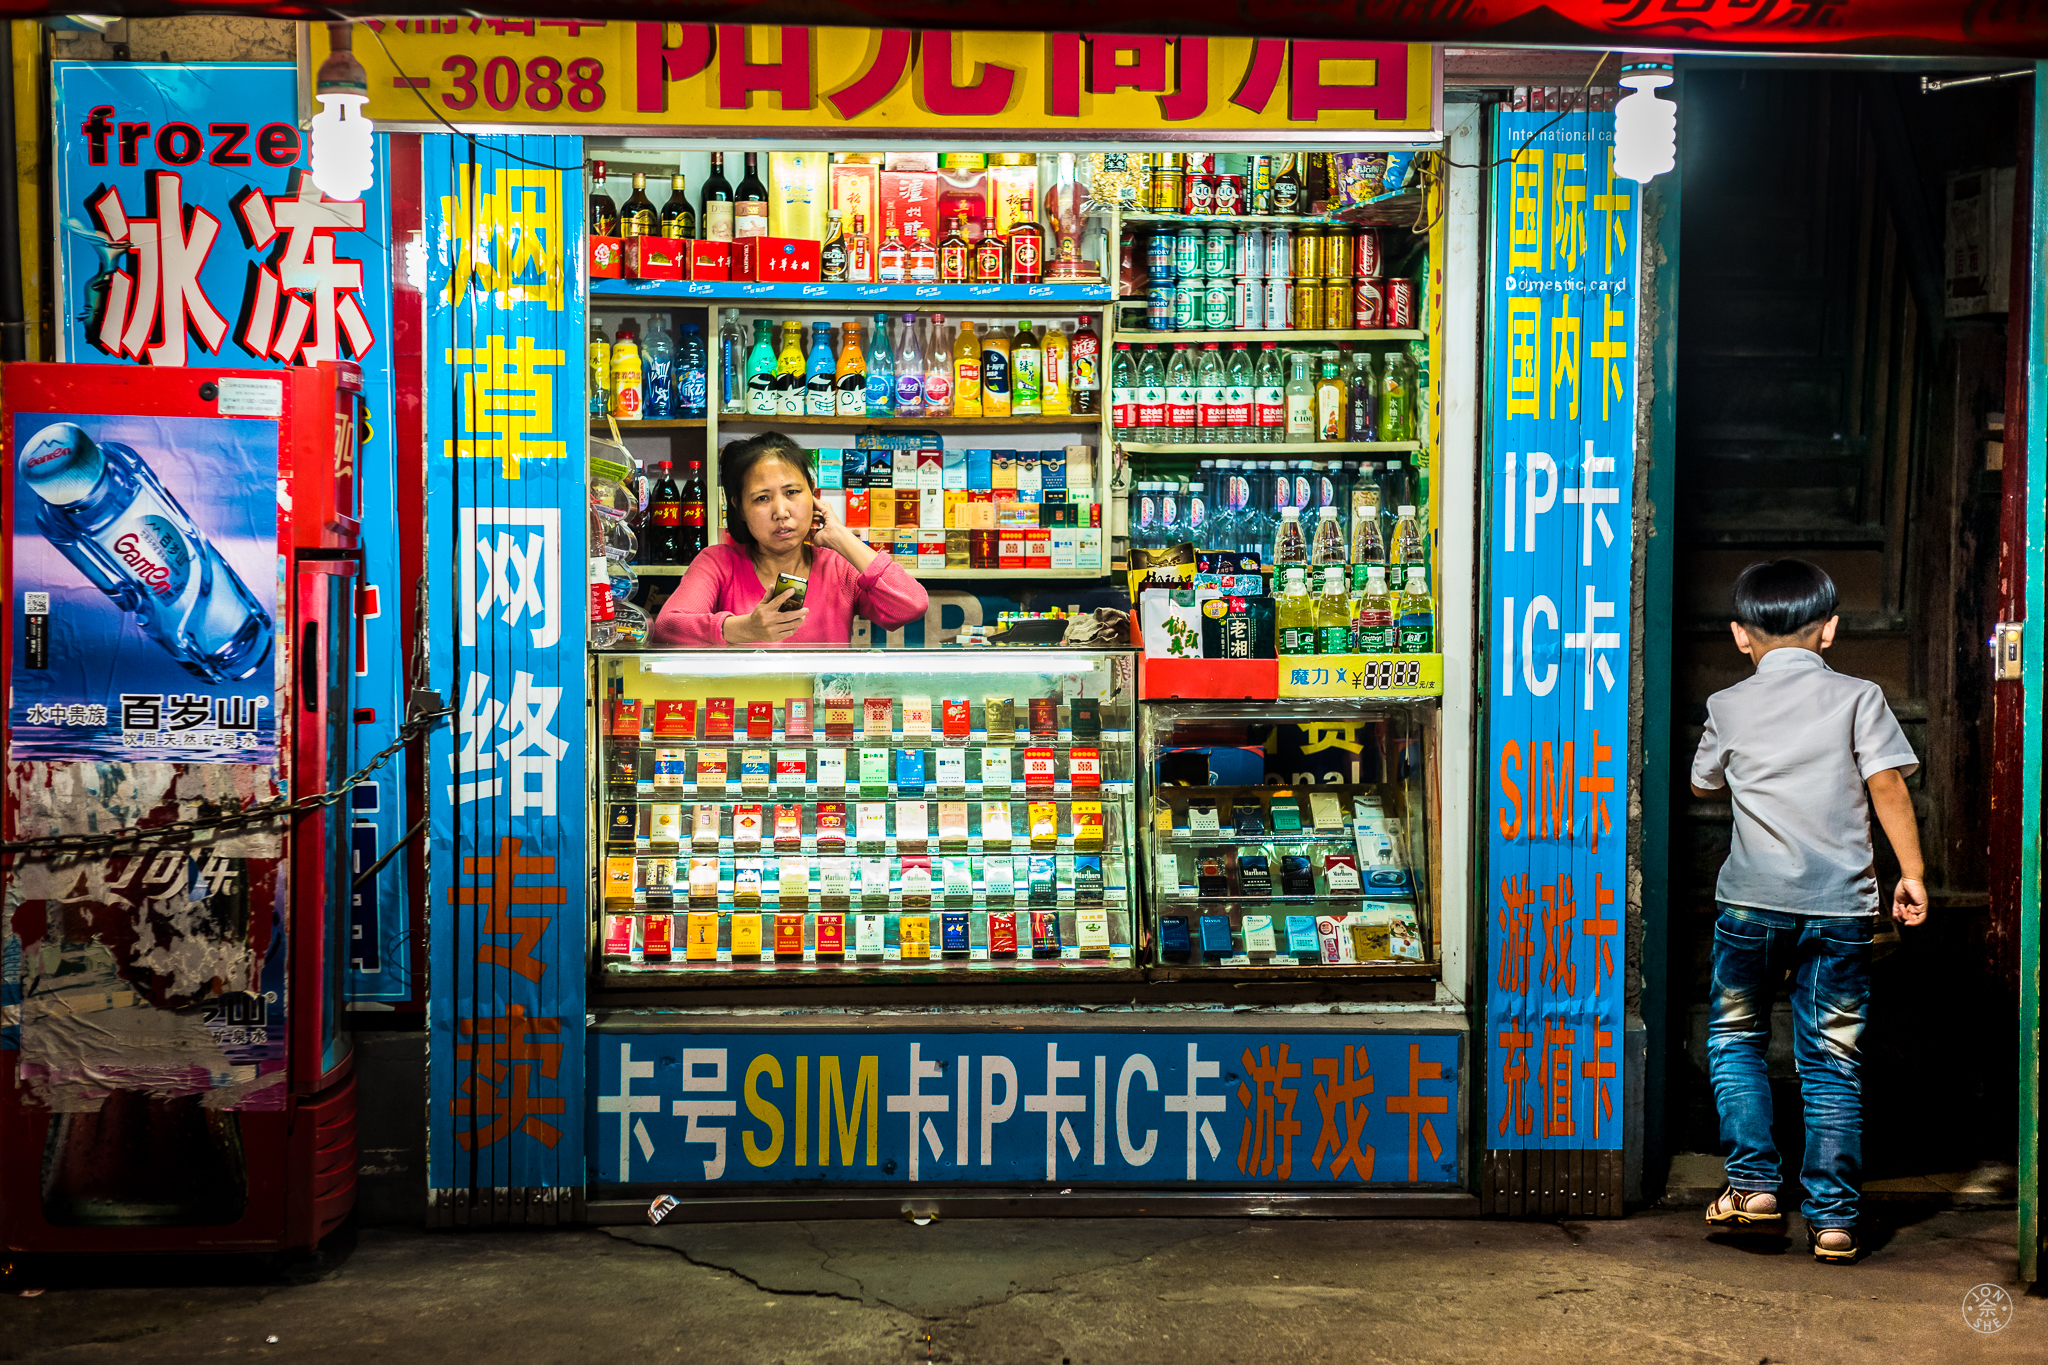 """""""The Night Store"""".  An irate storekeeper yells at her young son to go up to bed, in their home above their tobacco and sundries shop, late at night. Shanghai, China.May 30, 2016. © Jon She.Leica SL (Typ 601), Noctilux-M 50mm ASPH."""